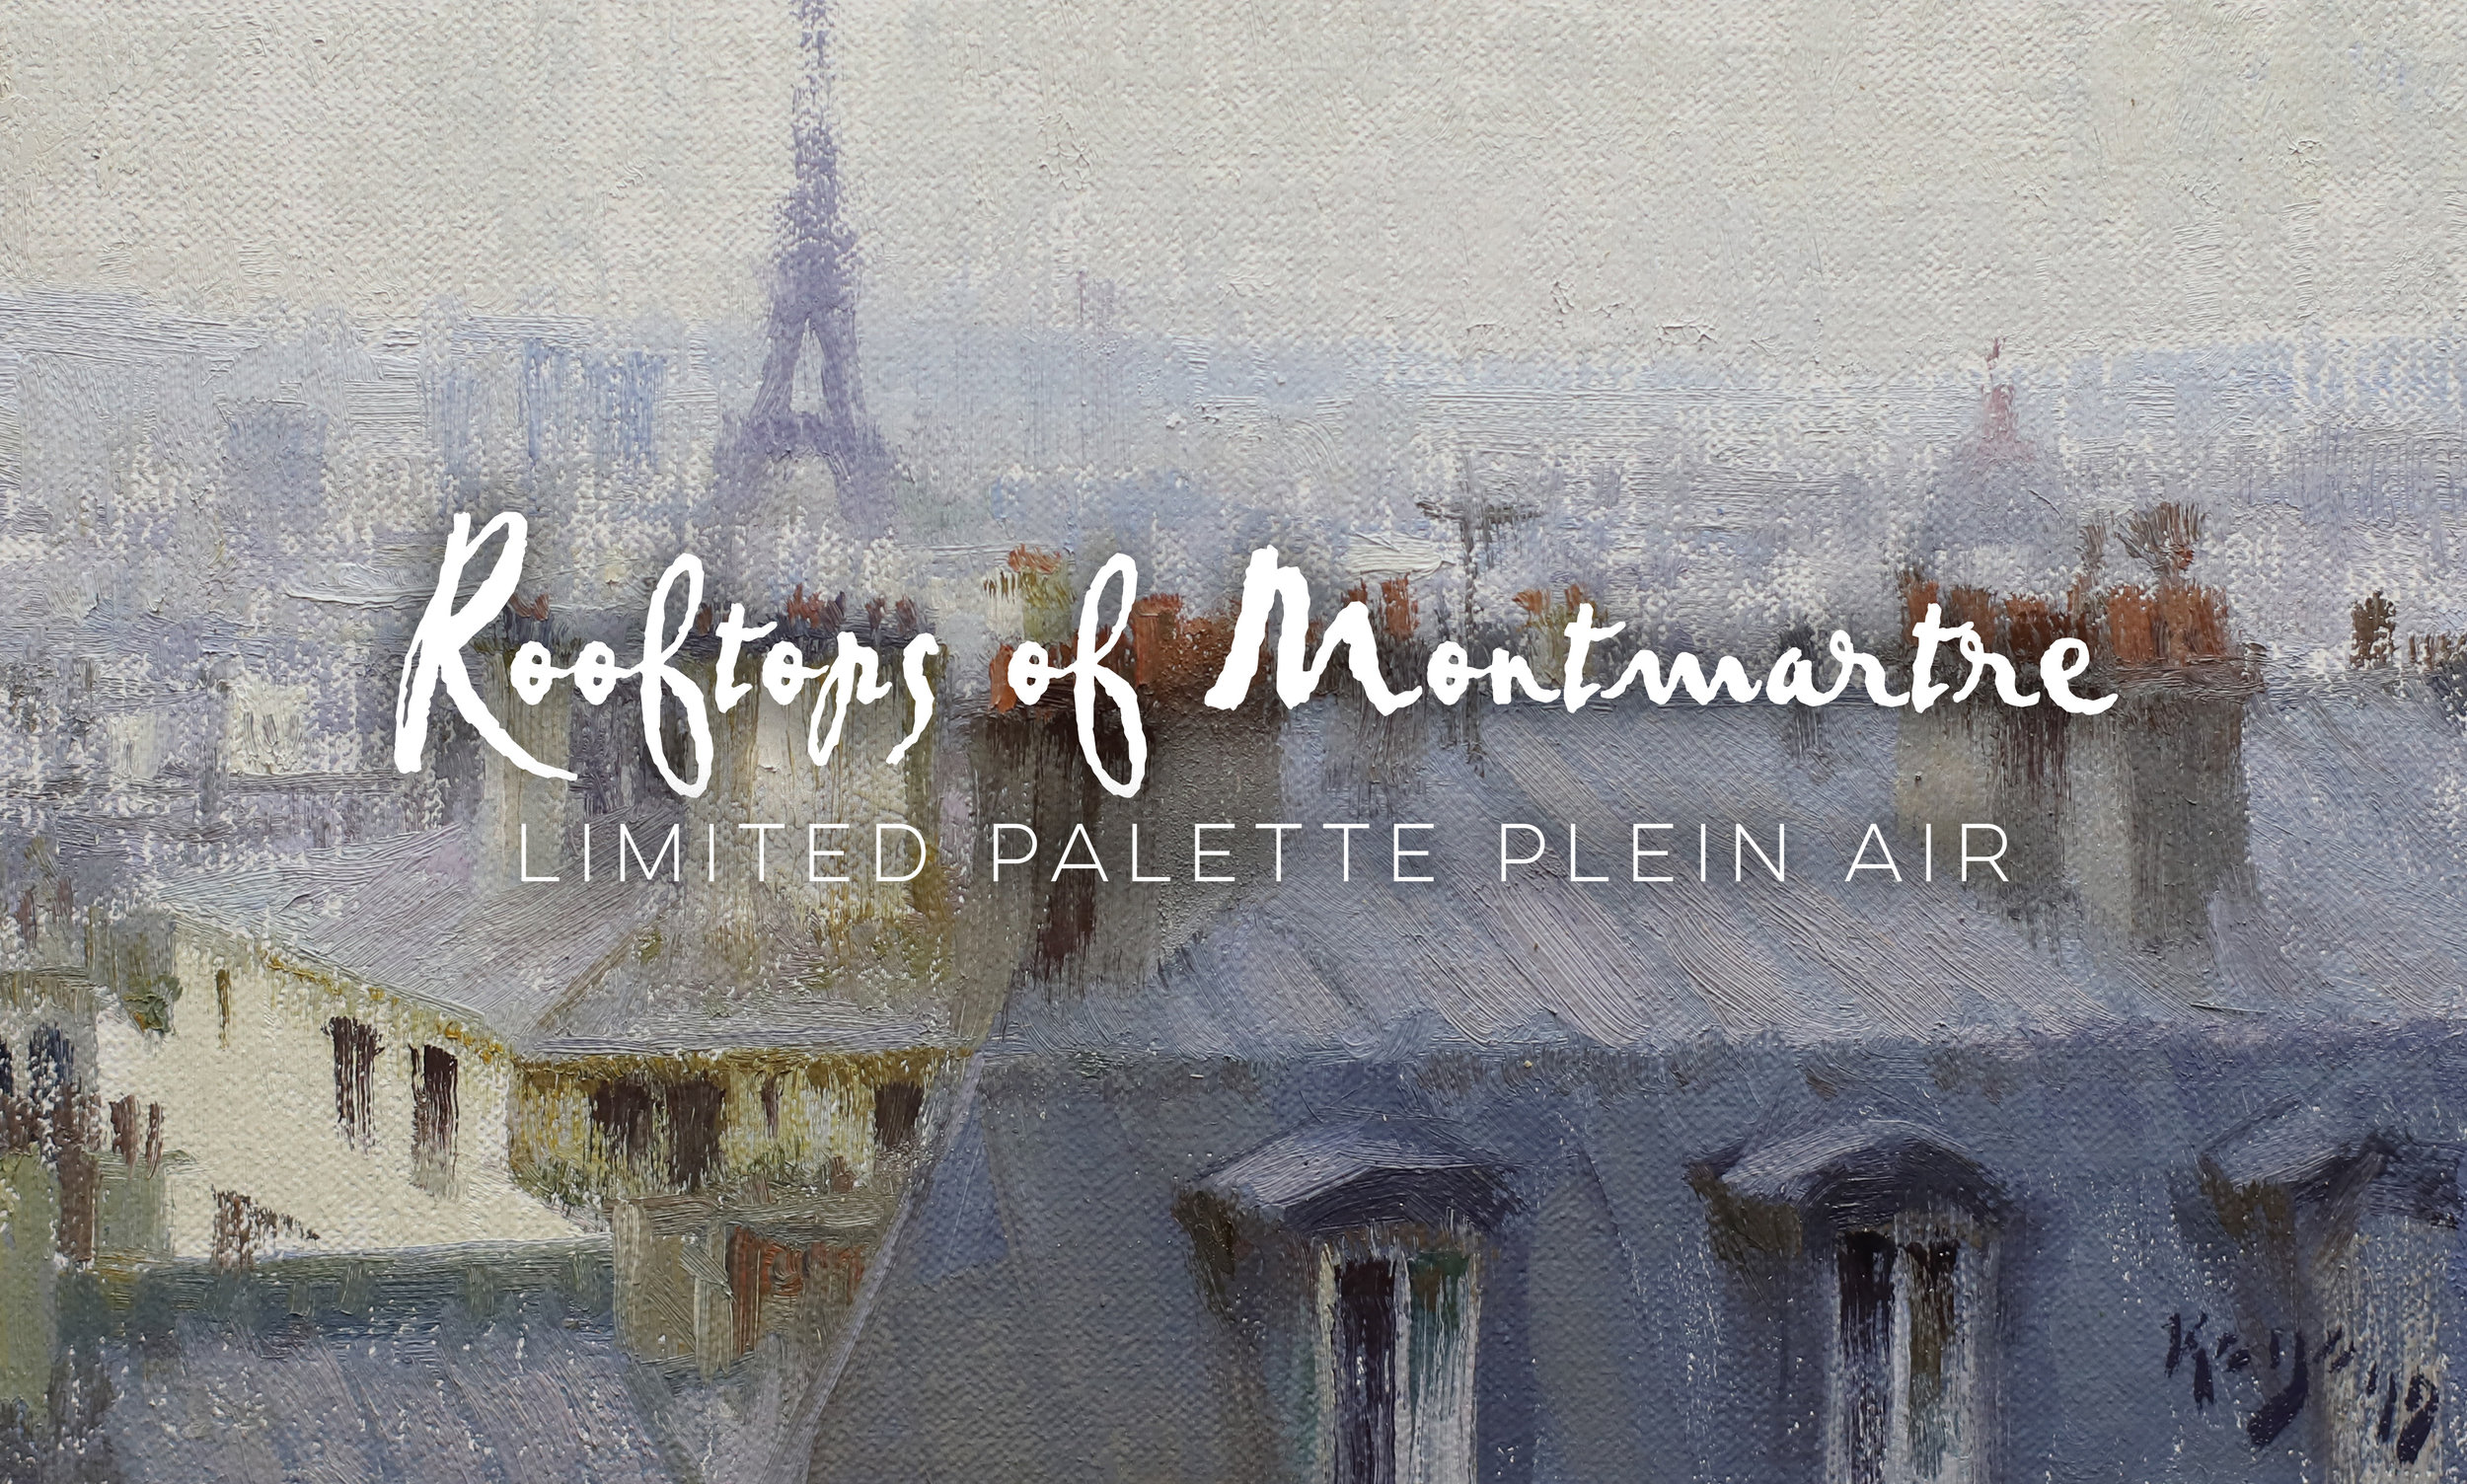 Rooftops of Montmartre - Limited Palette Plein AirDOWNLOAD HERE